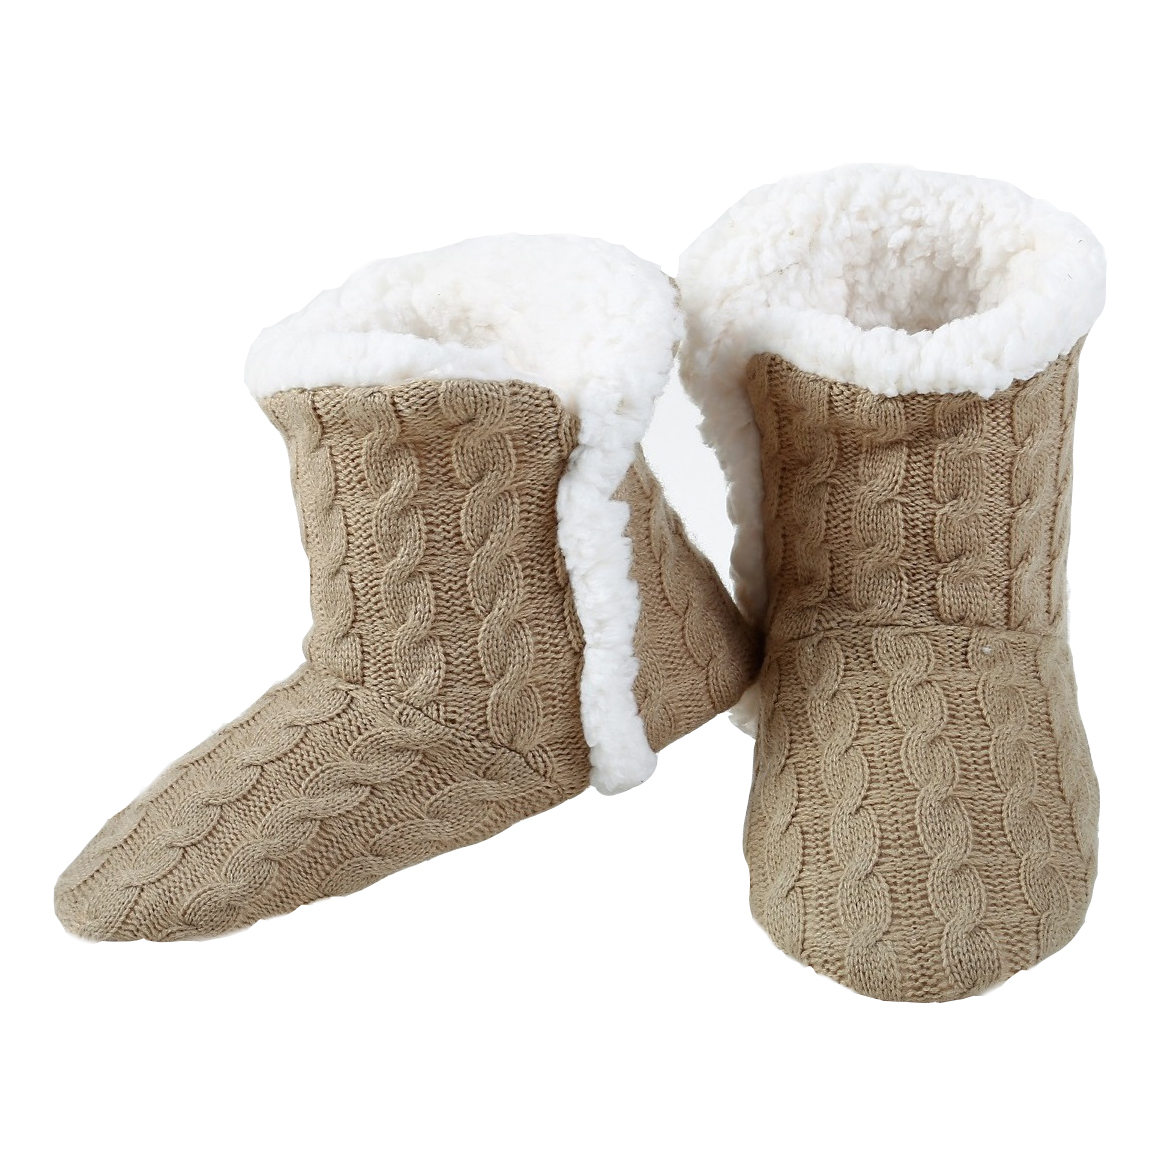 Yelete Womens Cable Knit Slippers House Booties Socks Soft Sherpa